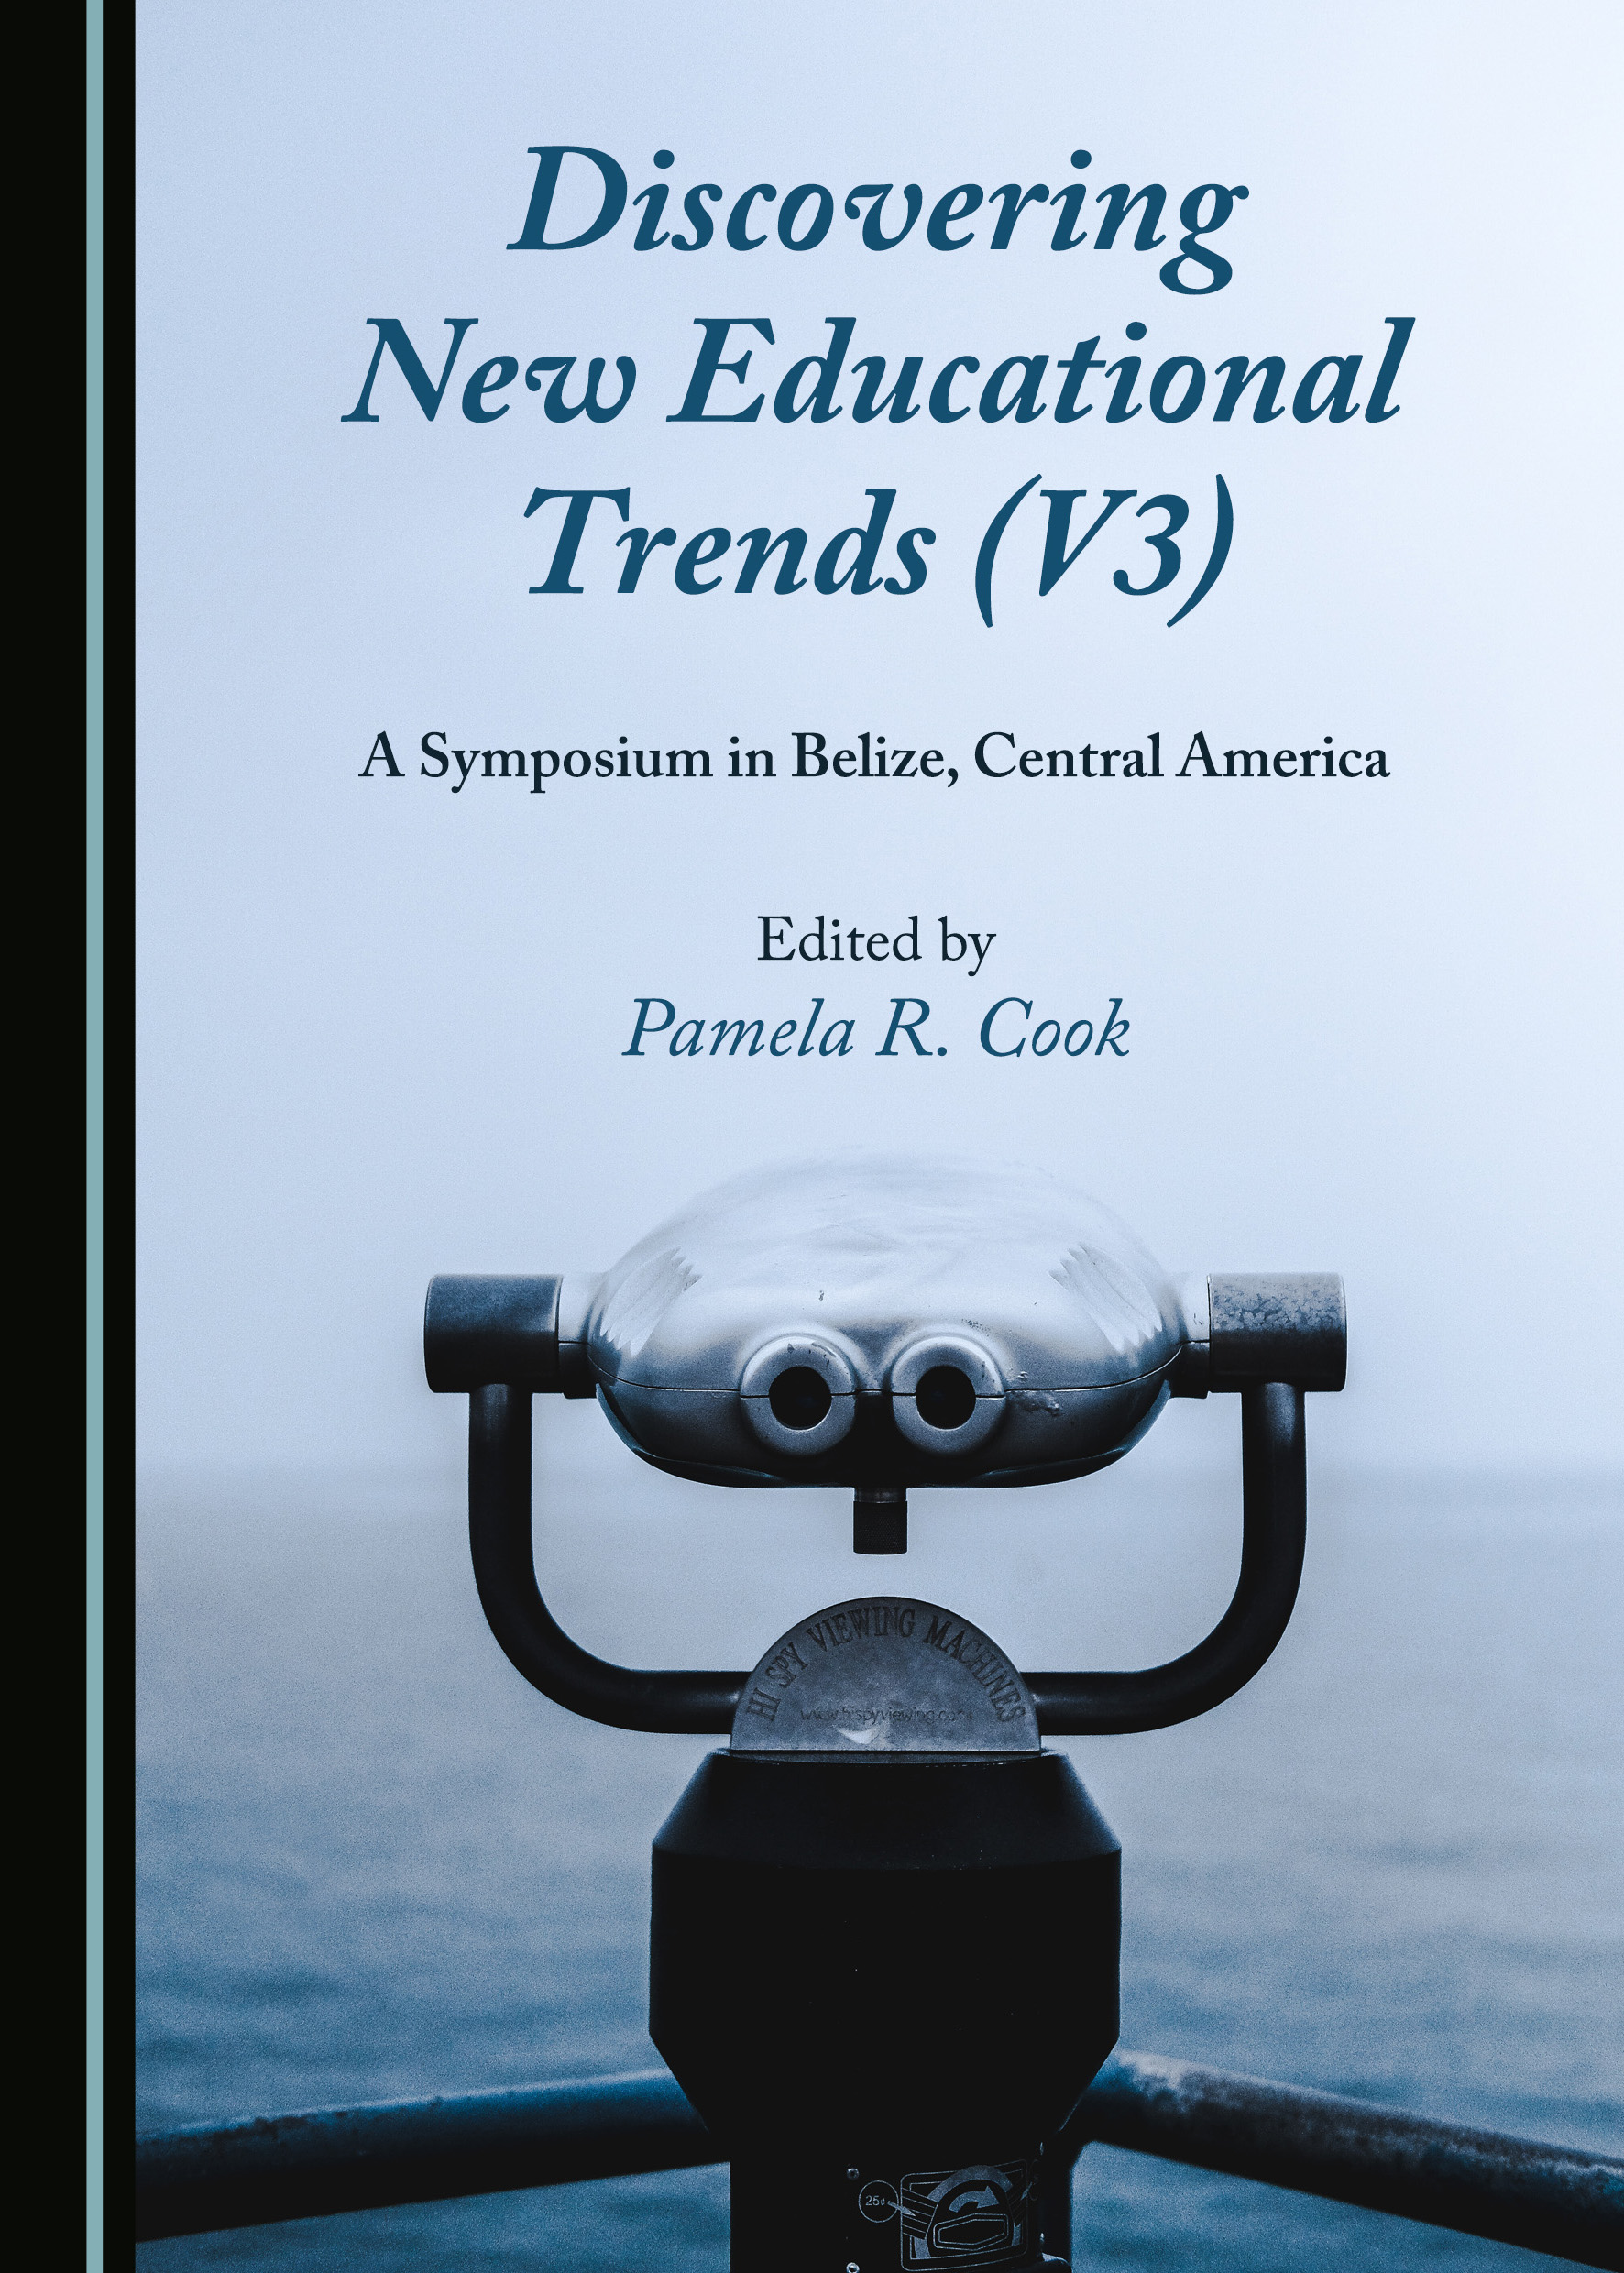 Discovering New Educational Trends (V3): A Symposium in Belize, Central America